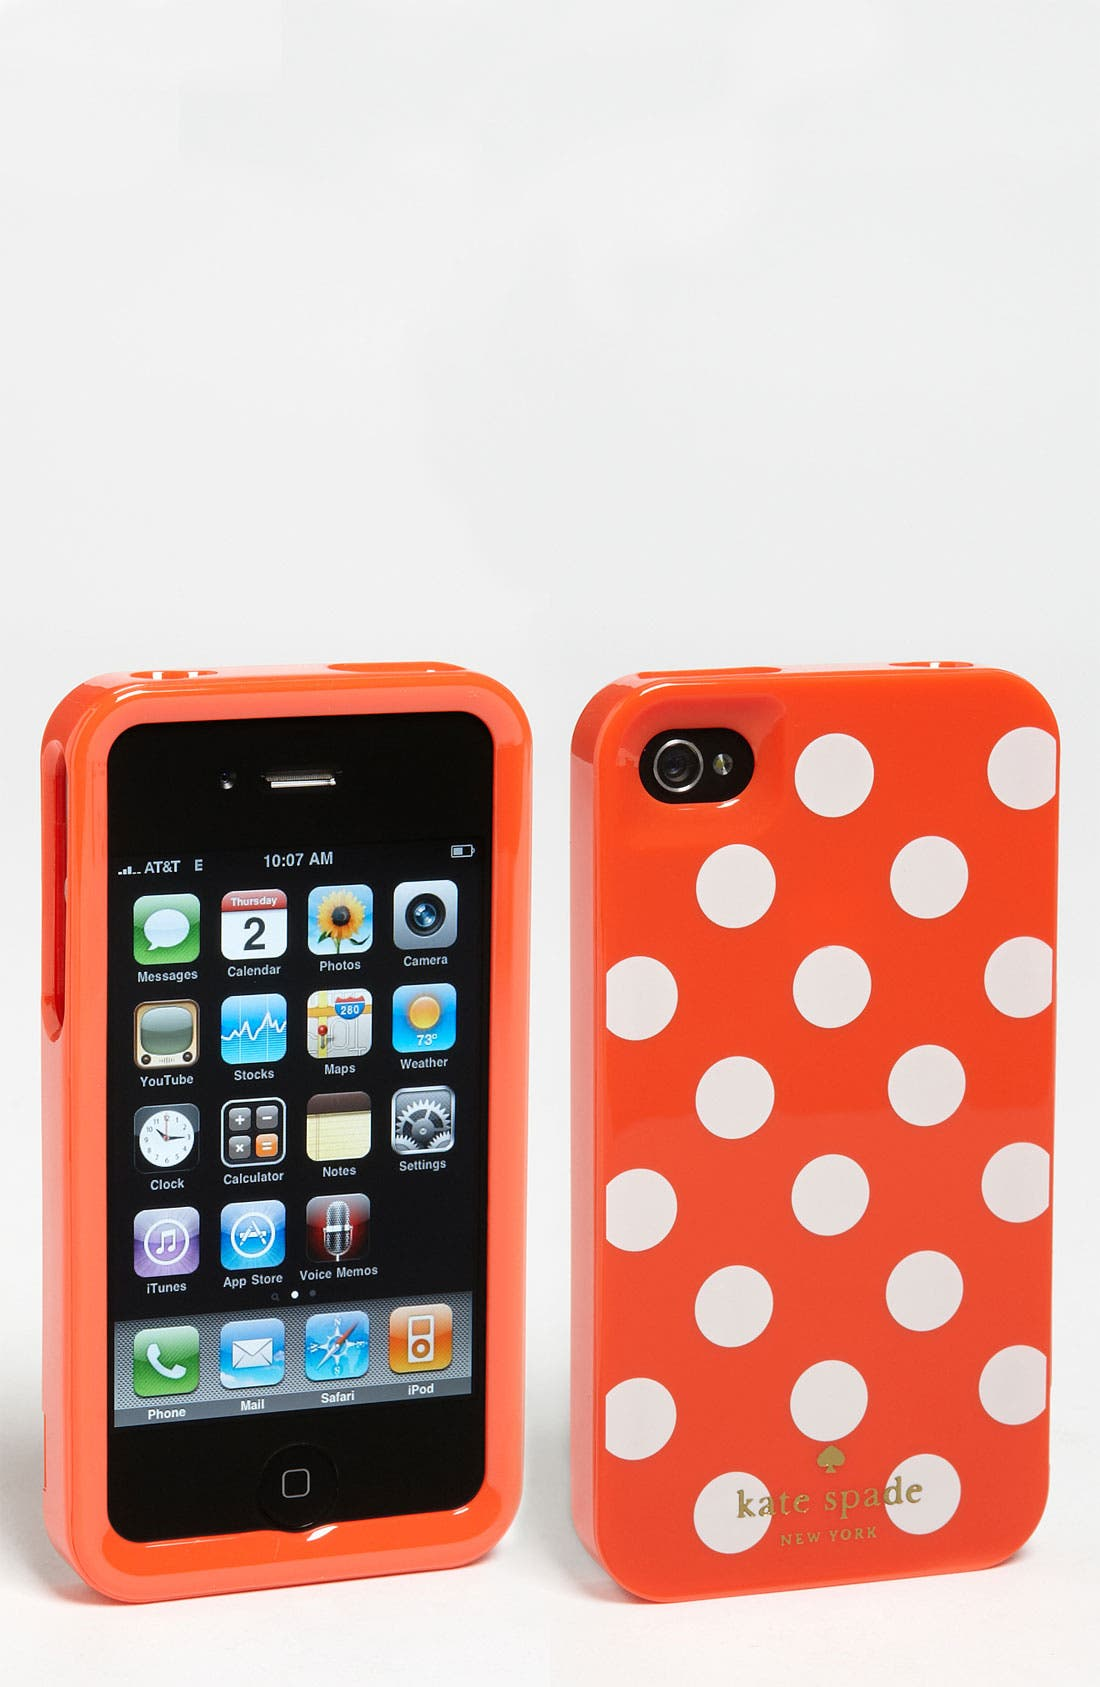 Main Image - kate spade new york rigid iPhone 4 & 4S case